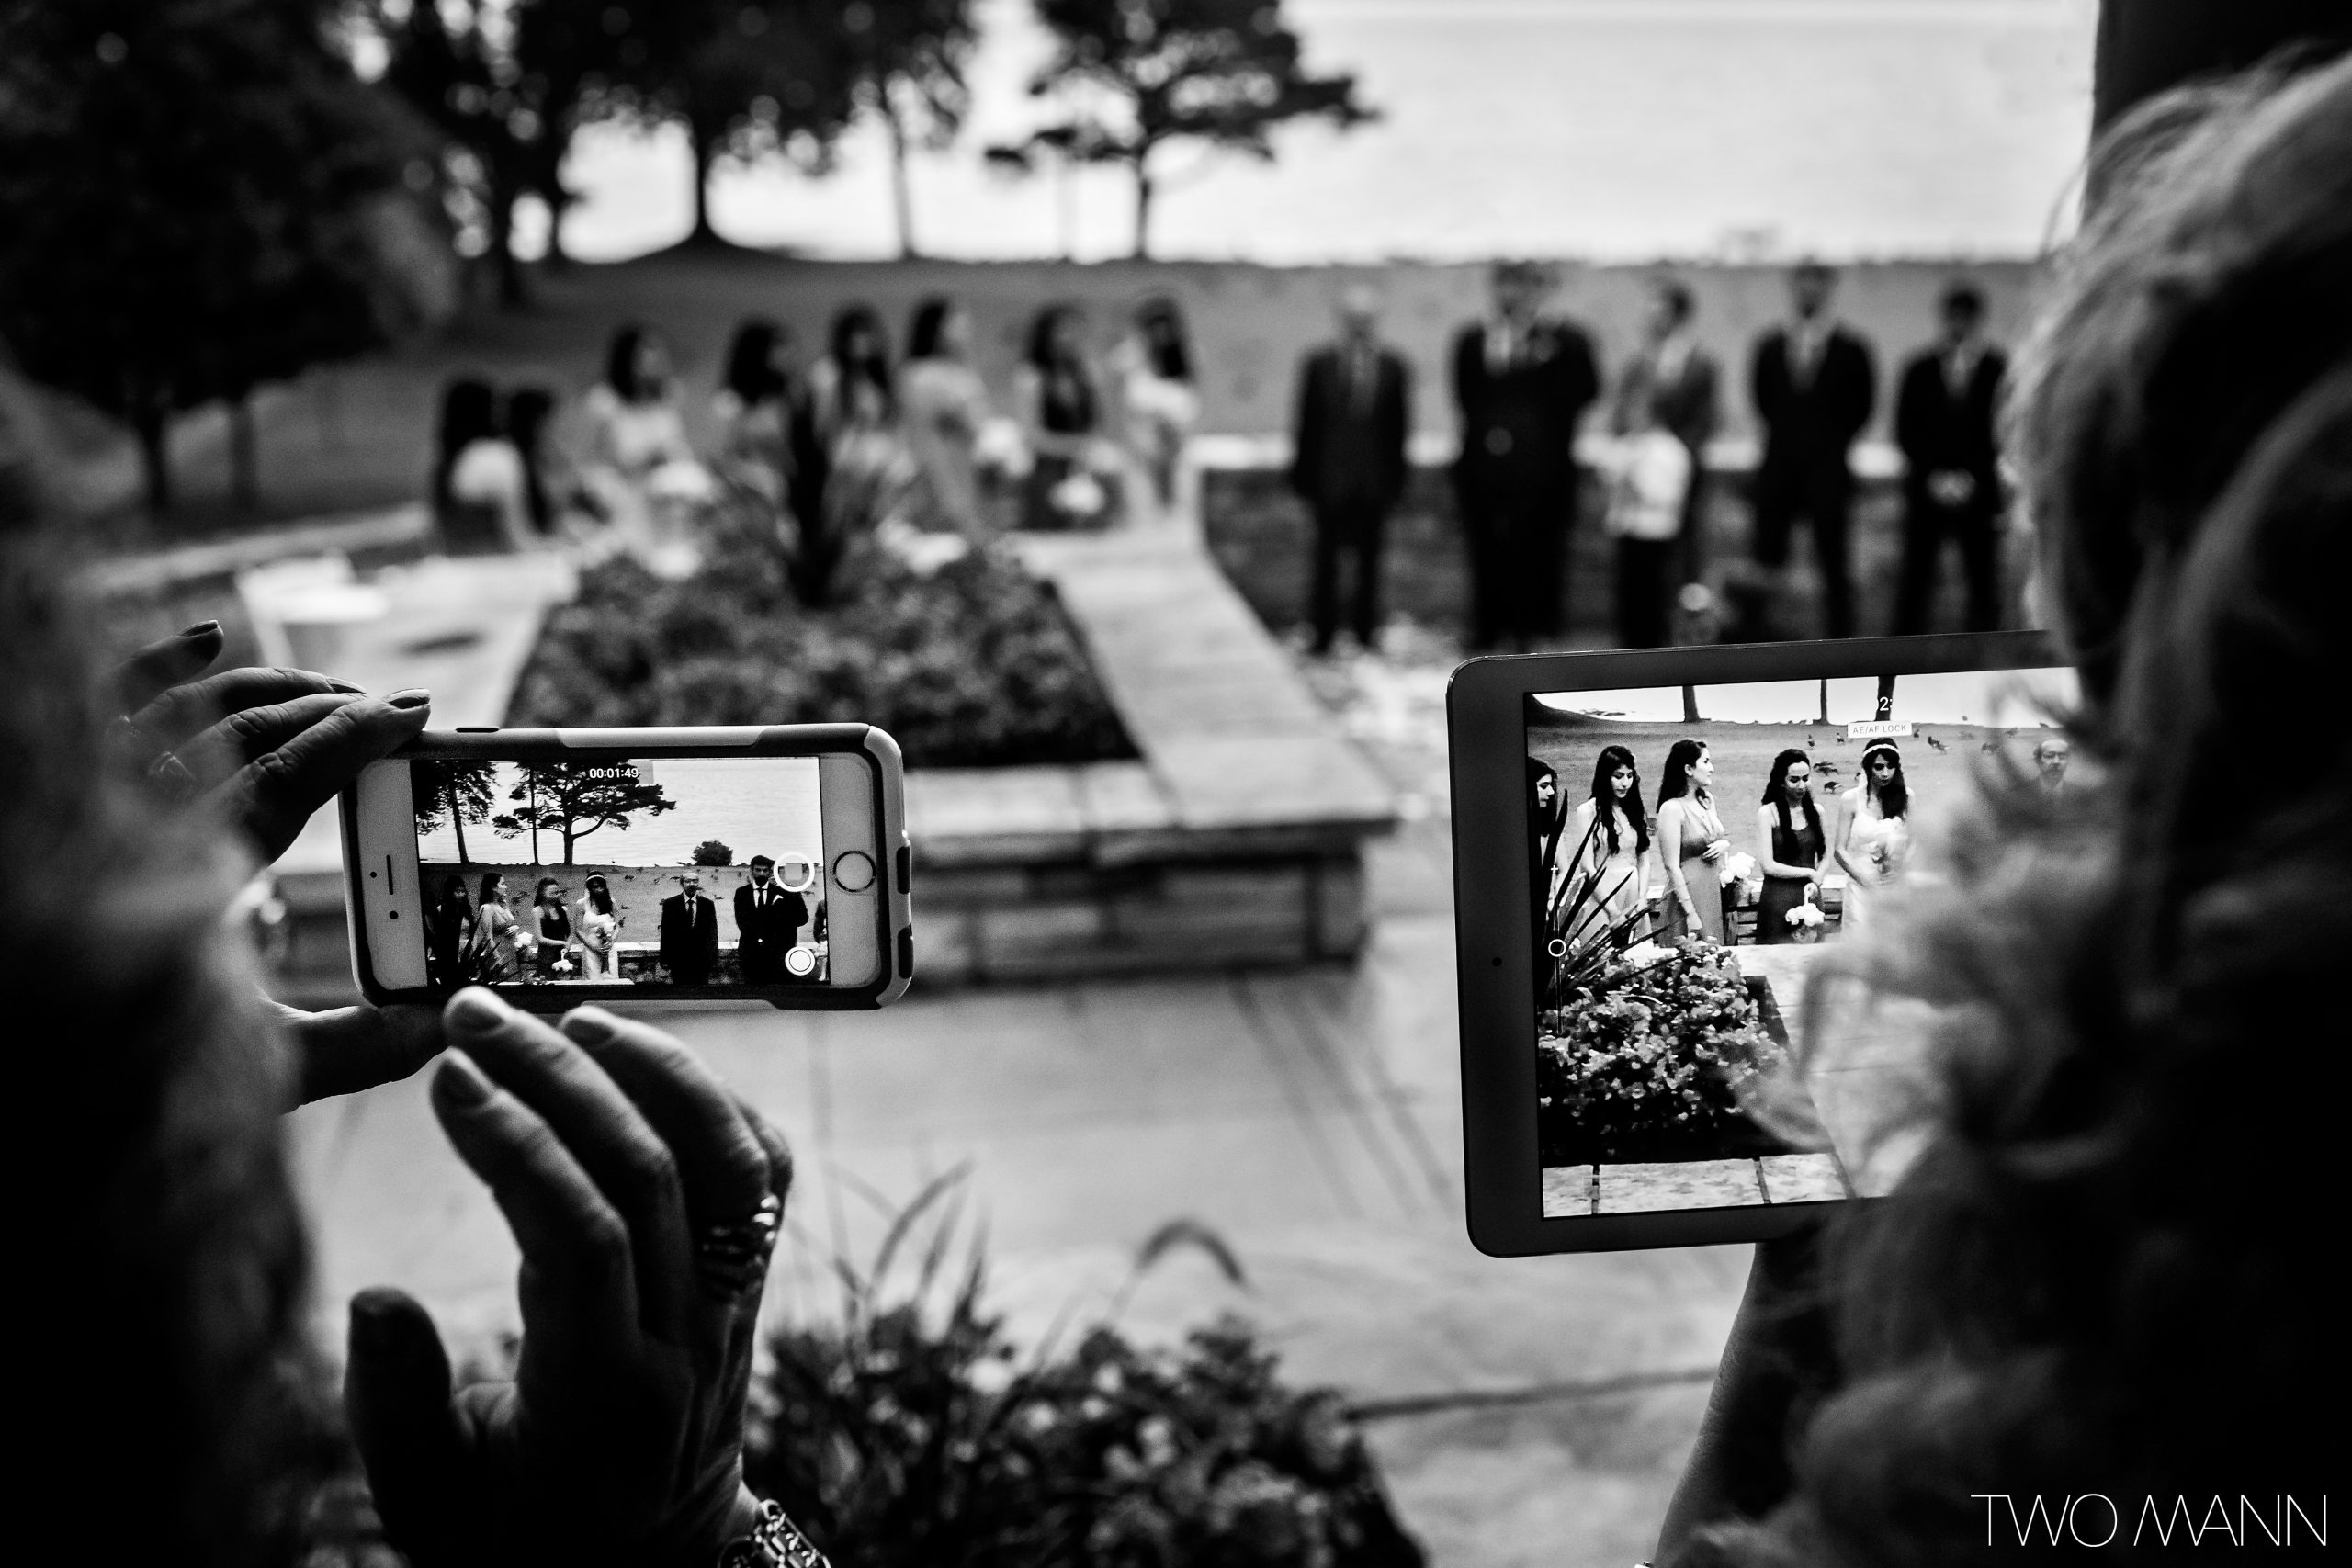 Two woman takes photos with iPhone and iPad during wedding ceremony